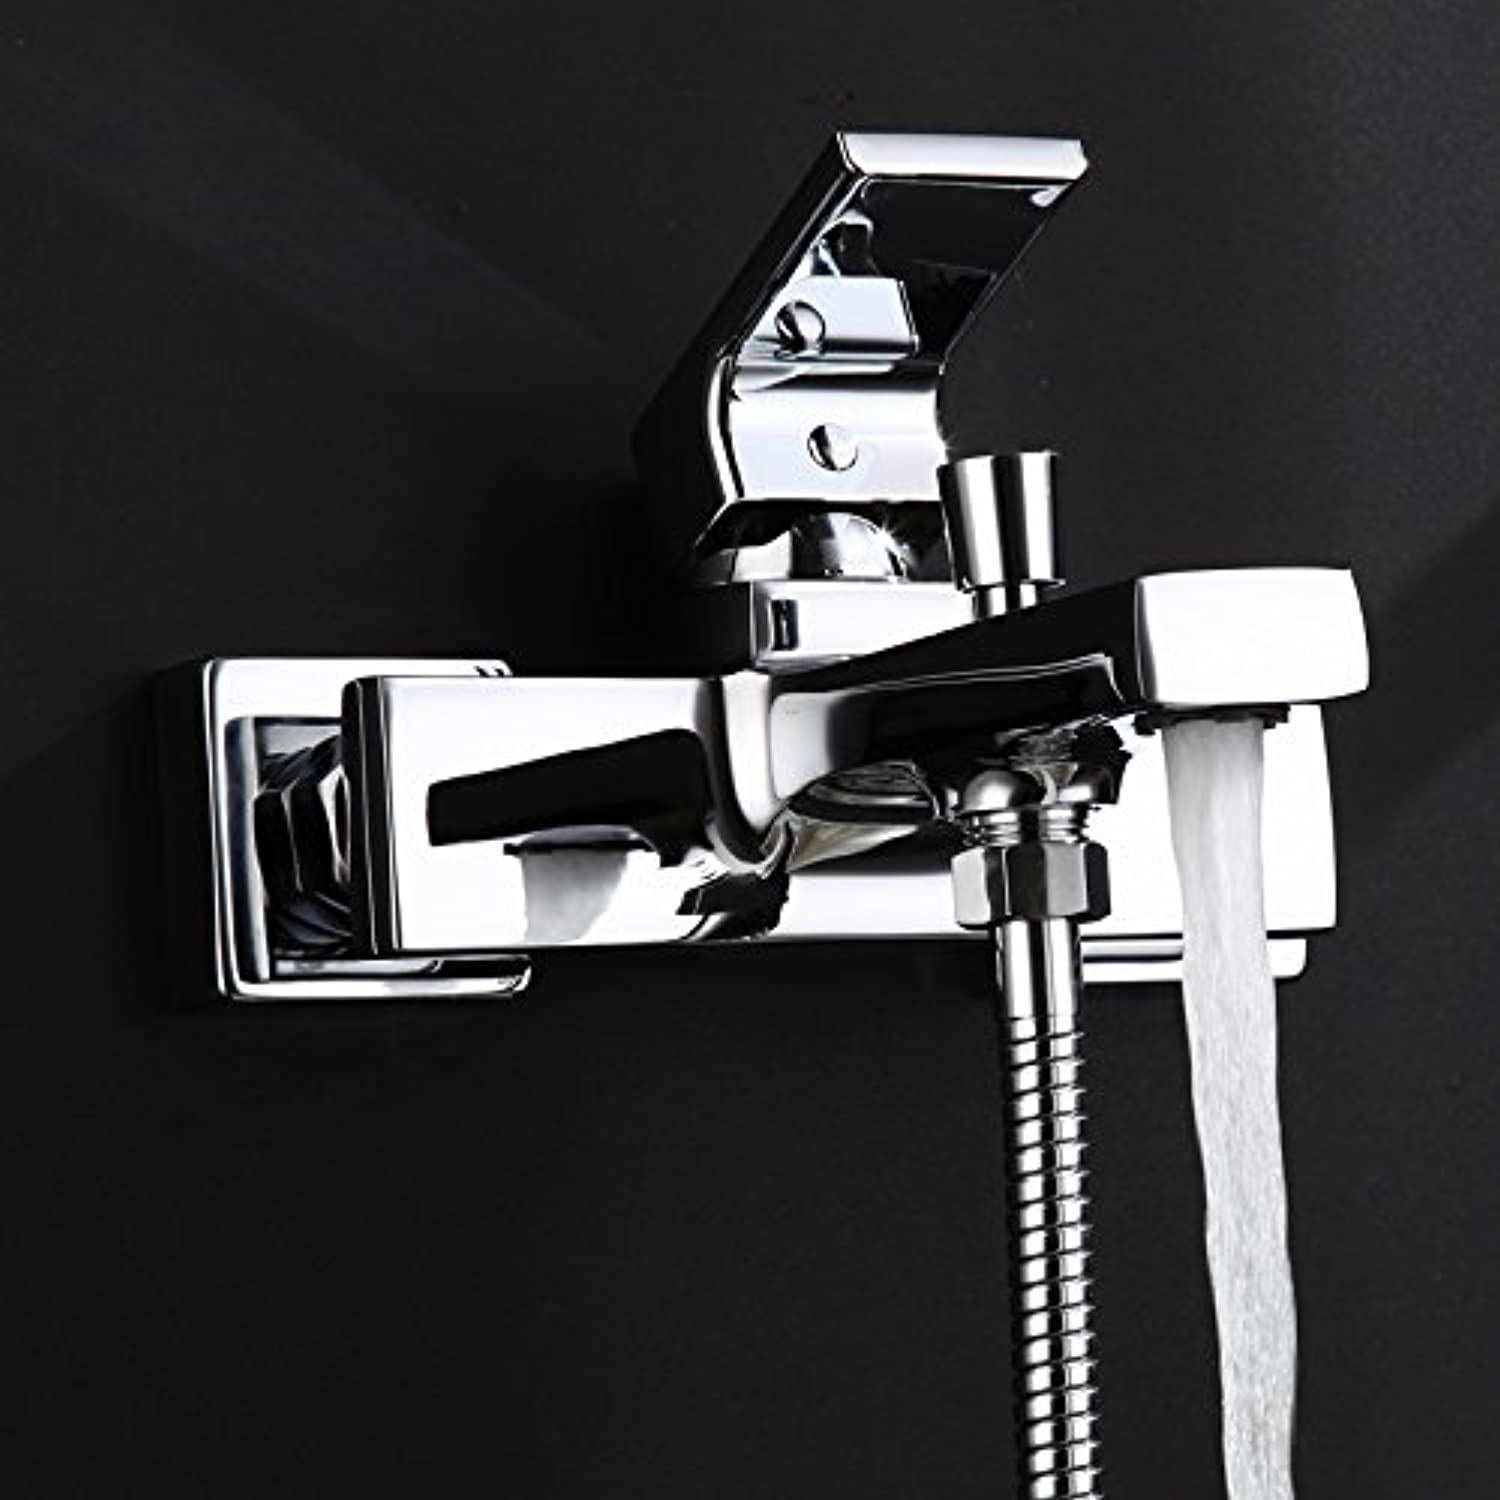 Damxied New Copper Square Hot And Cold Bathtub Faucet With Lifting Rod Bathtub Shower Set,D313-1 (Dan Longtou)Quality Assurance Of Modern And Simple Classic Retro Luxury Home Decoration